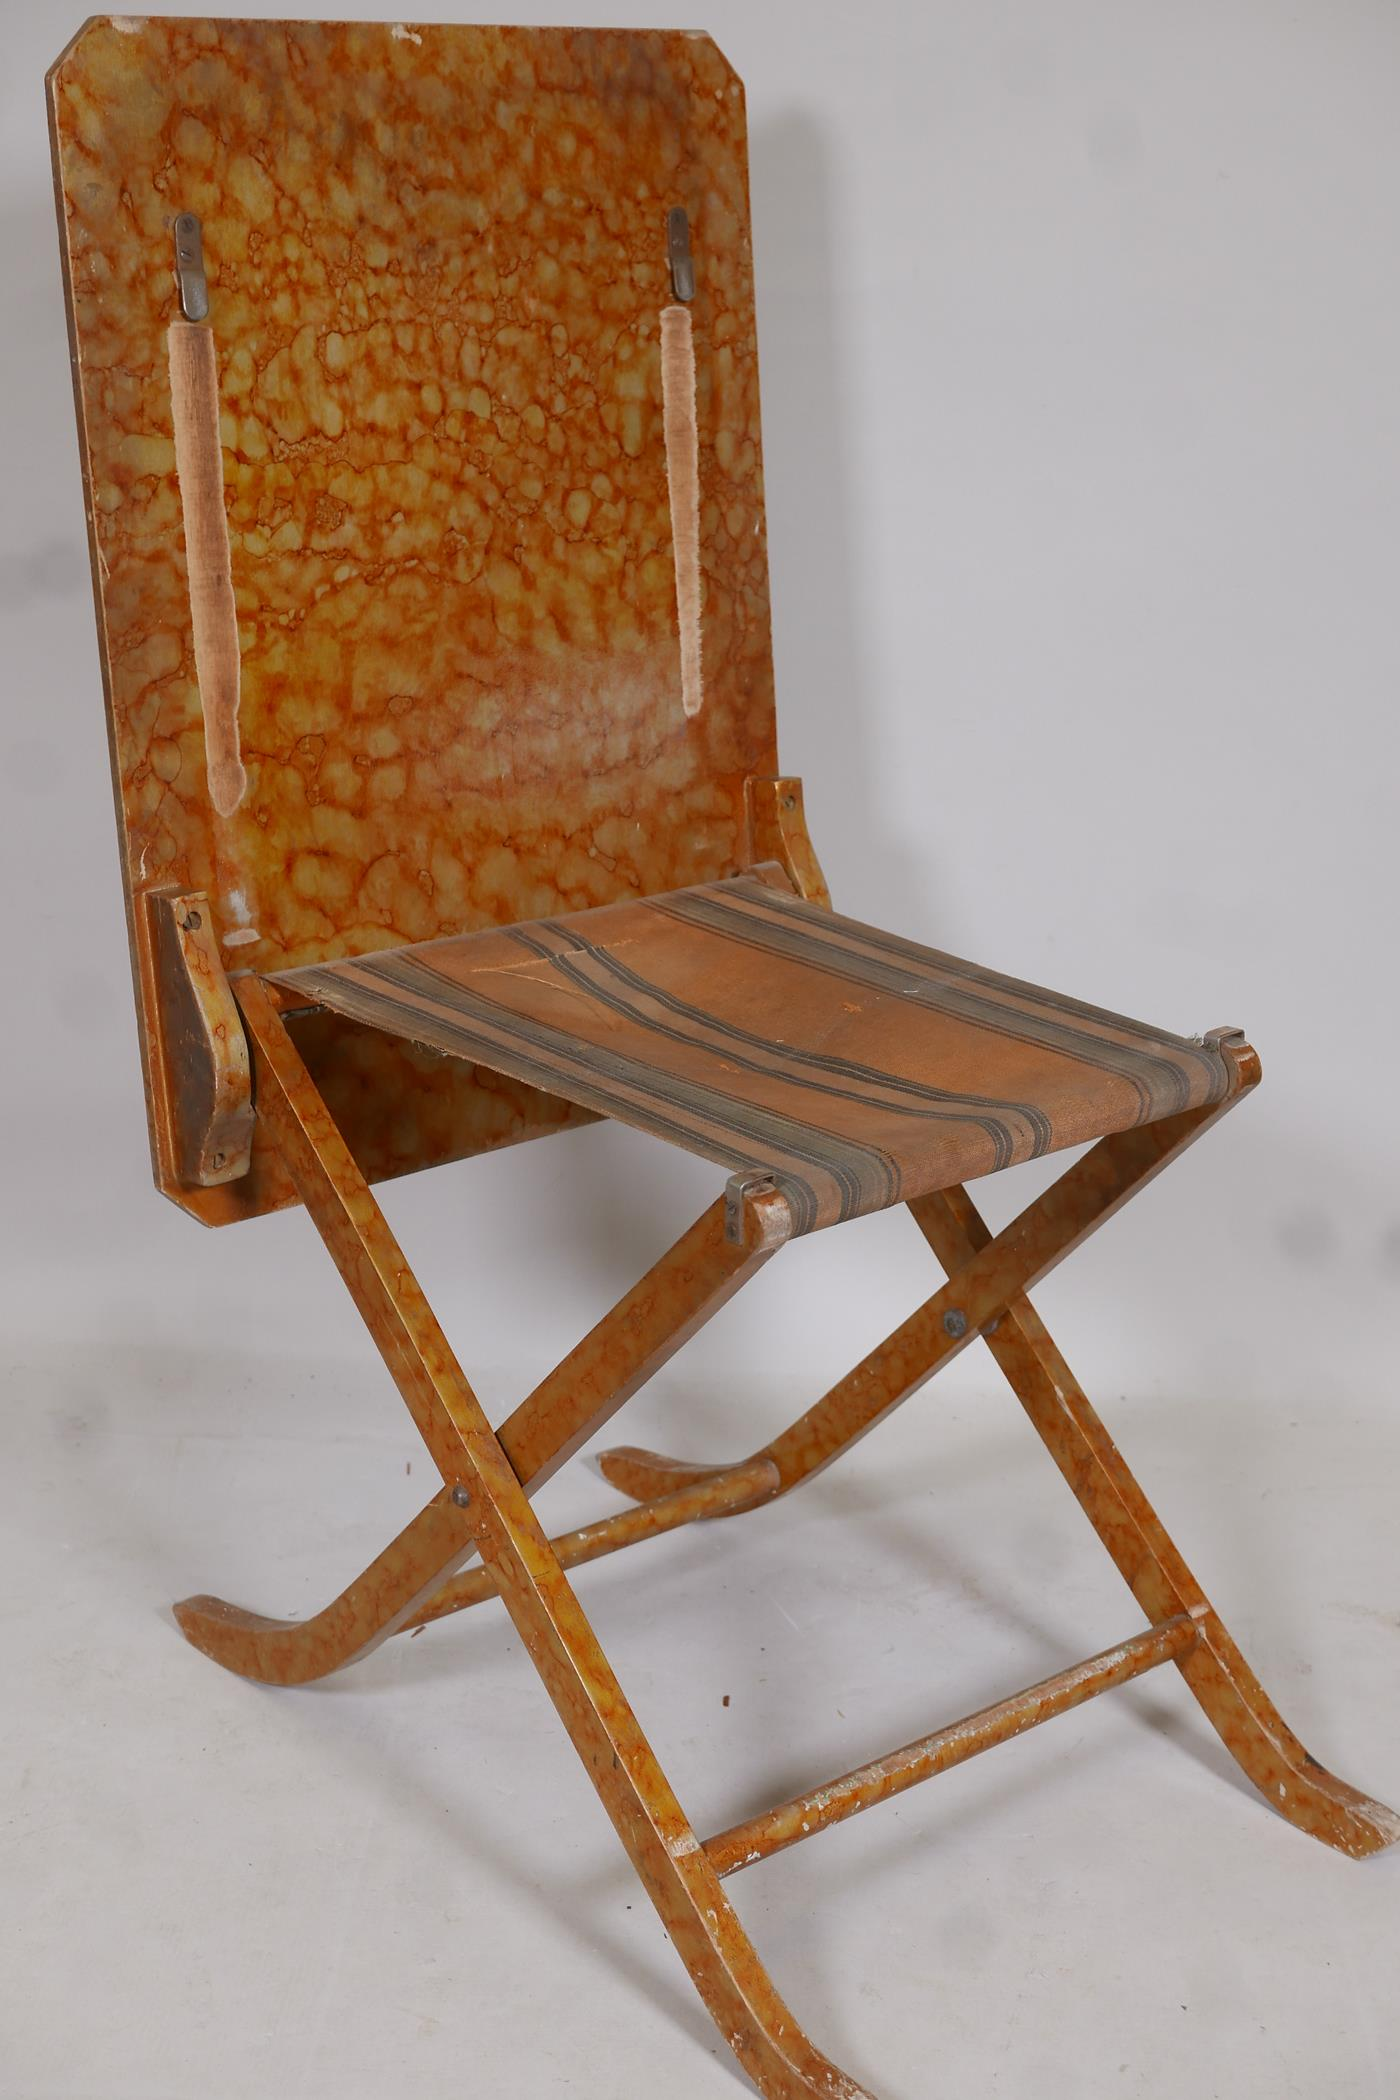 A metamorphic table/chair, early C20th, in original painted finish - Image 2 of 4